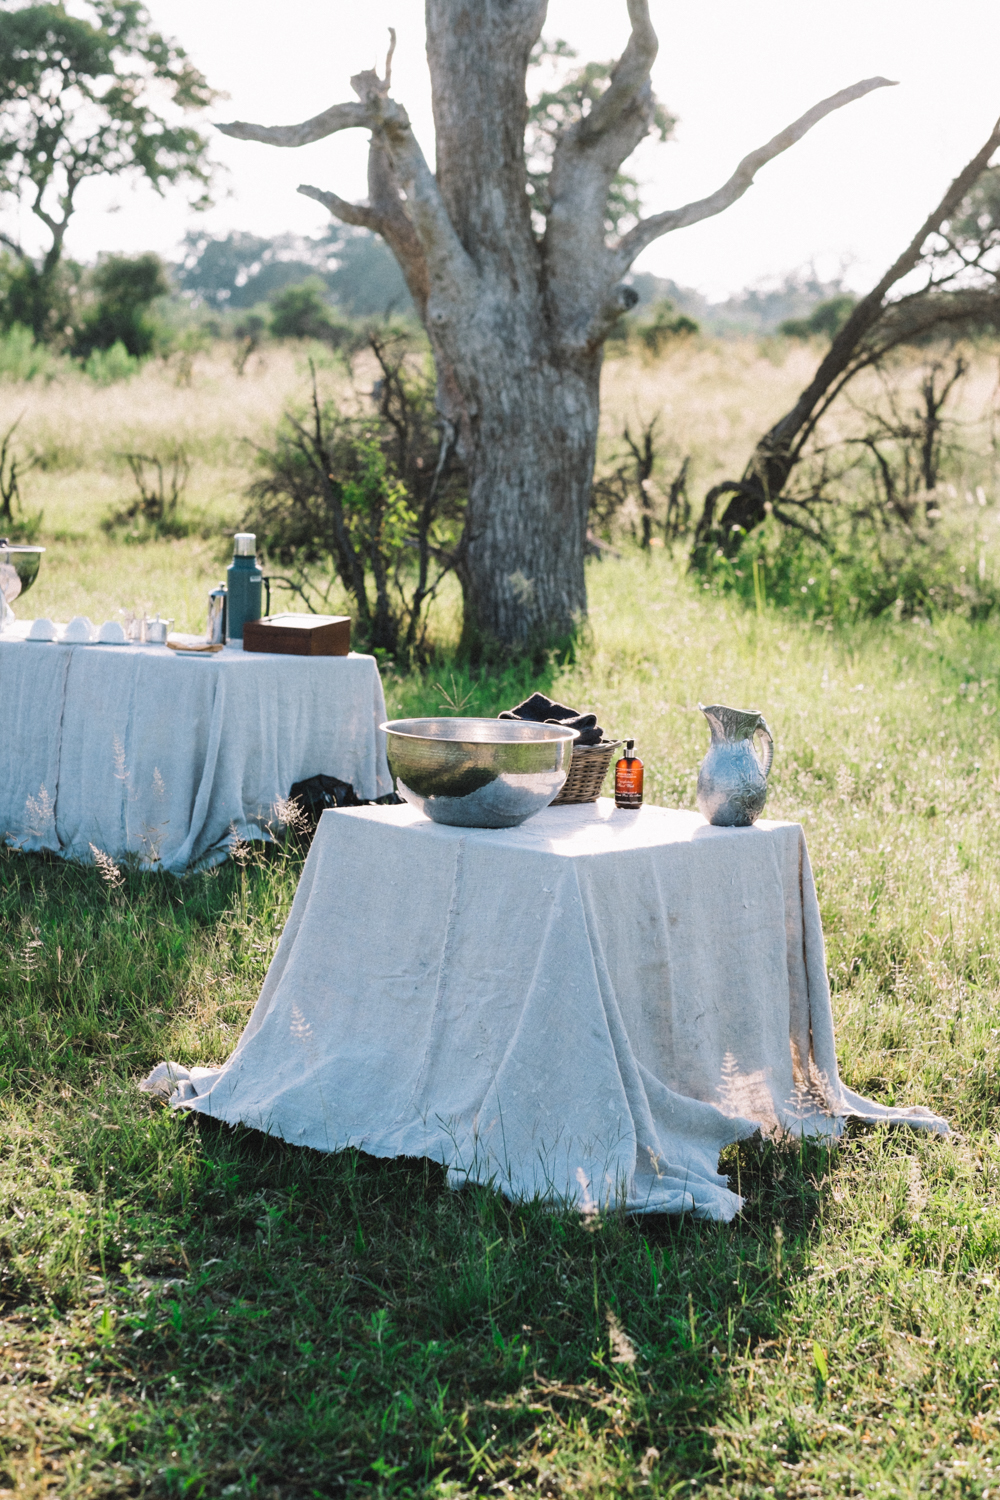 Melissa de Mata | Abu Camp Luxury Safari - Botswana